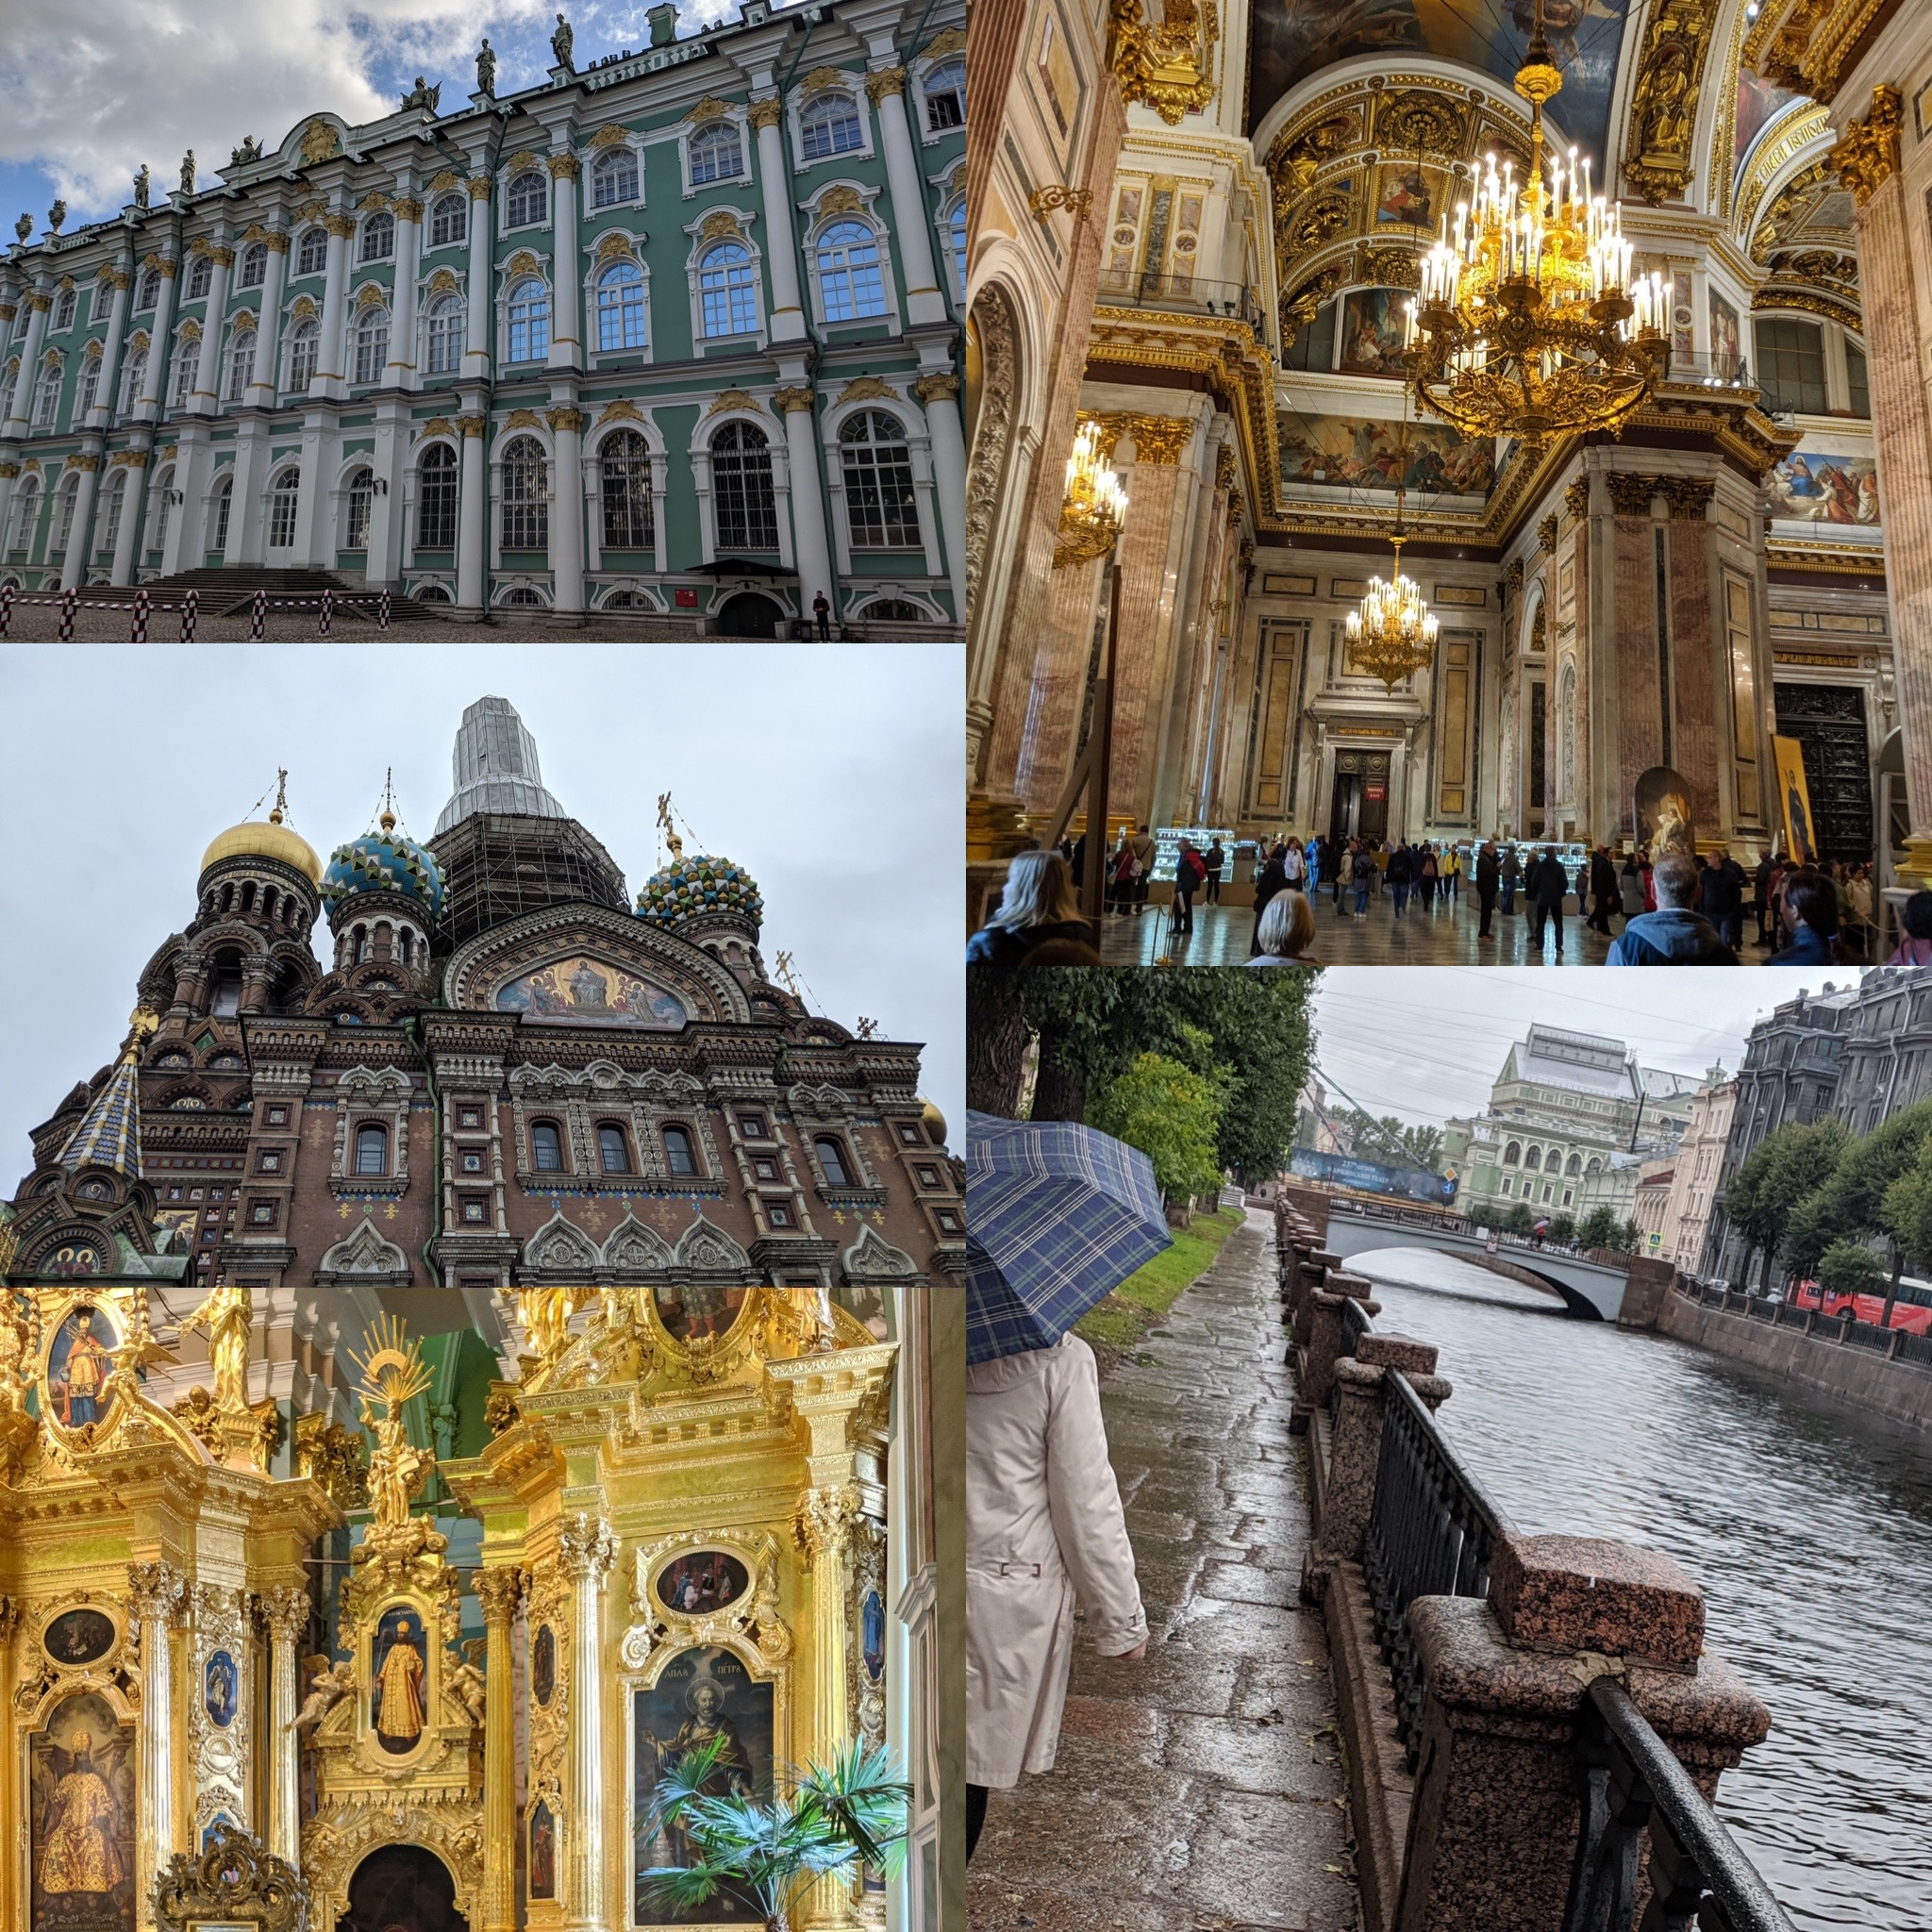 week with friends St. petersburg & Amsterdam - Wonderful service at the Four Seasons Lion Palace. A bit overwhelmed with the museums but enjoyed seeing all the sights. Karen is responsive, helpful and listens well. She is knowledgeable about many places and diligent in her research for places she has not yet been to. And, when we needed her in the middle of the night, she was there for us. Ed P., Minneapolis MN. Traveled Sept. 2019